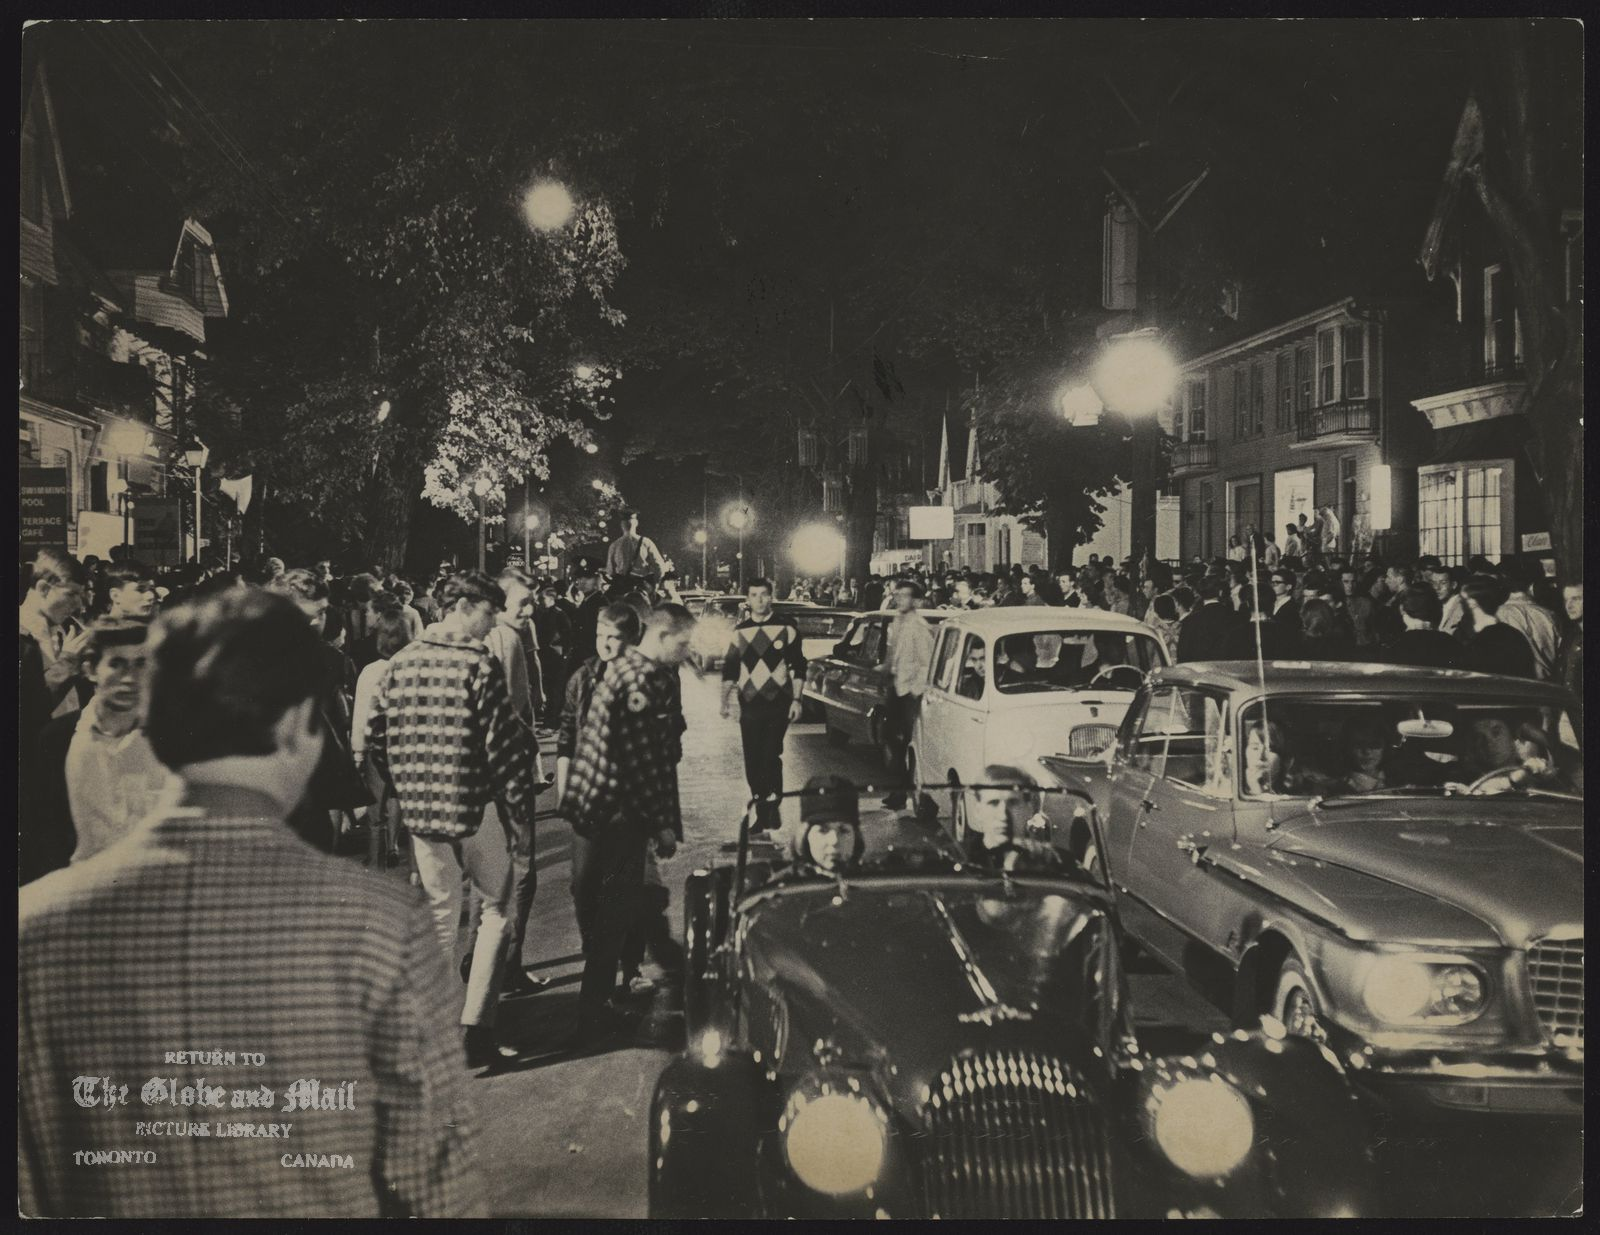 YORKVILLE during carnival in aid of St. Lawrence Centre for the Arts, September 2, 1965.